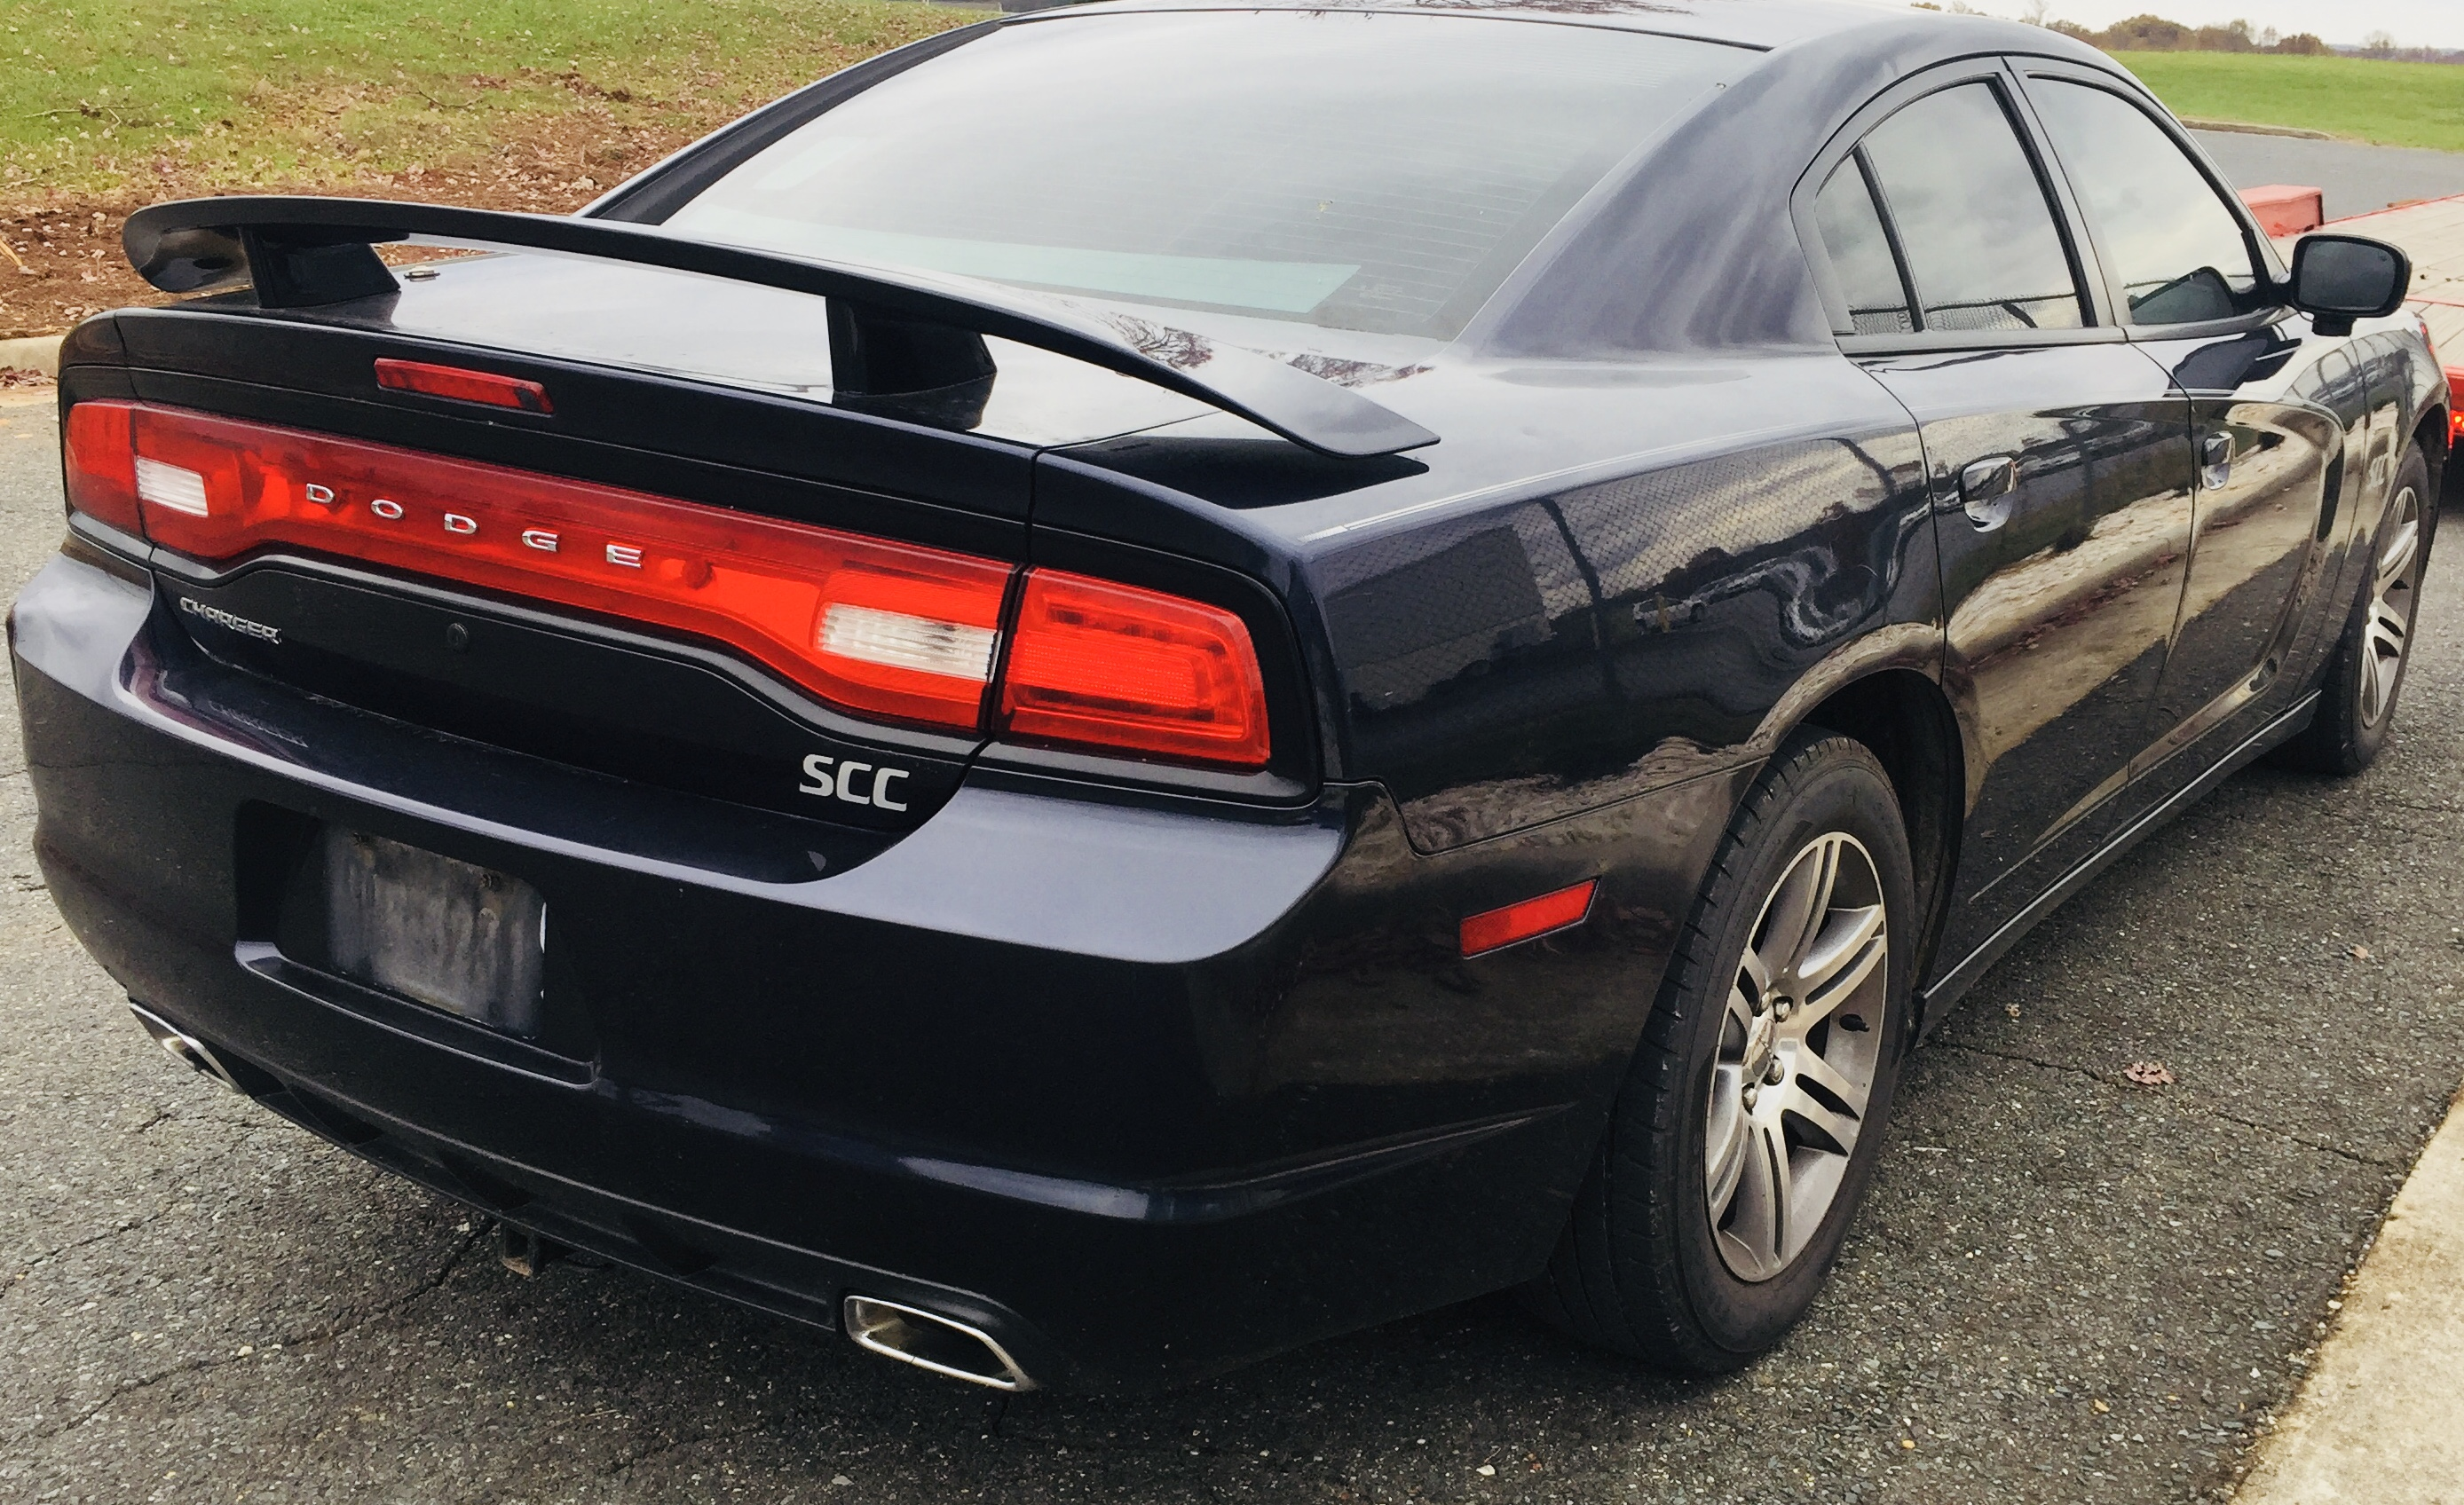 2012 Dodge Charger HEMI Police Undercover